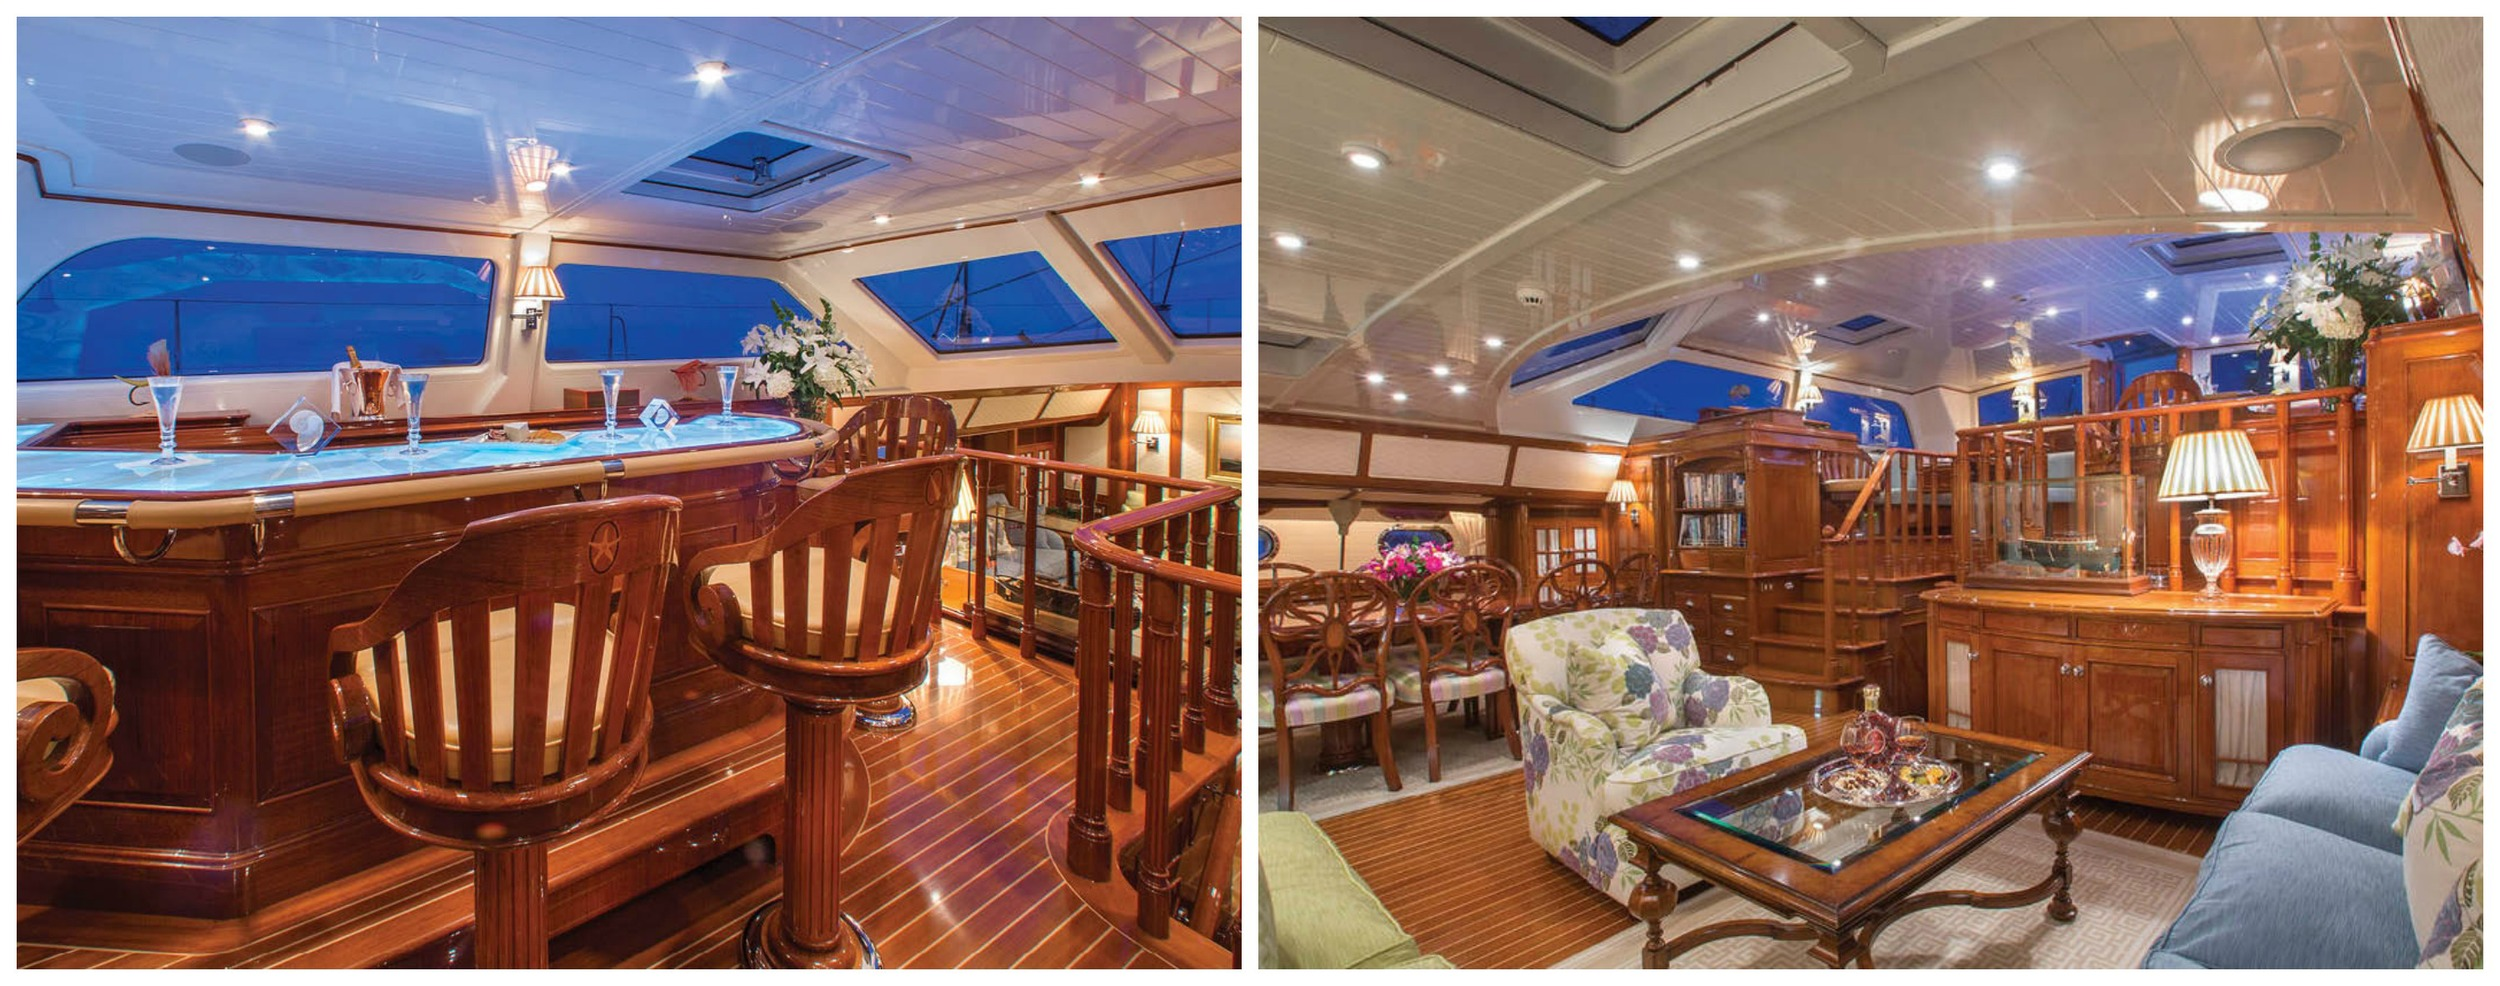 Whisper's teak interior is adorned with intricate inlays and carvings and includes an upper pilothouse lounge (left) that boasts a full wet bar with panoramic views of the horizon and a roomy salon (right) complete with a formal dining area.